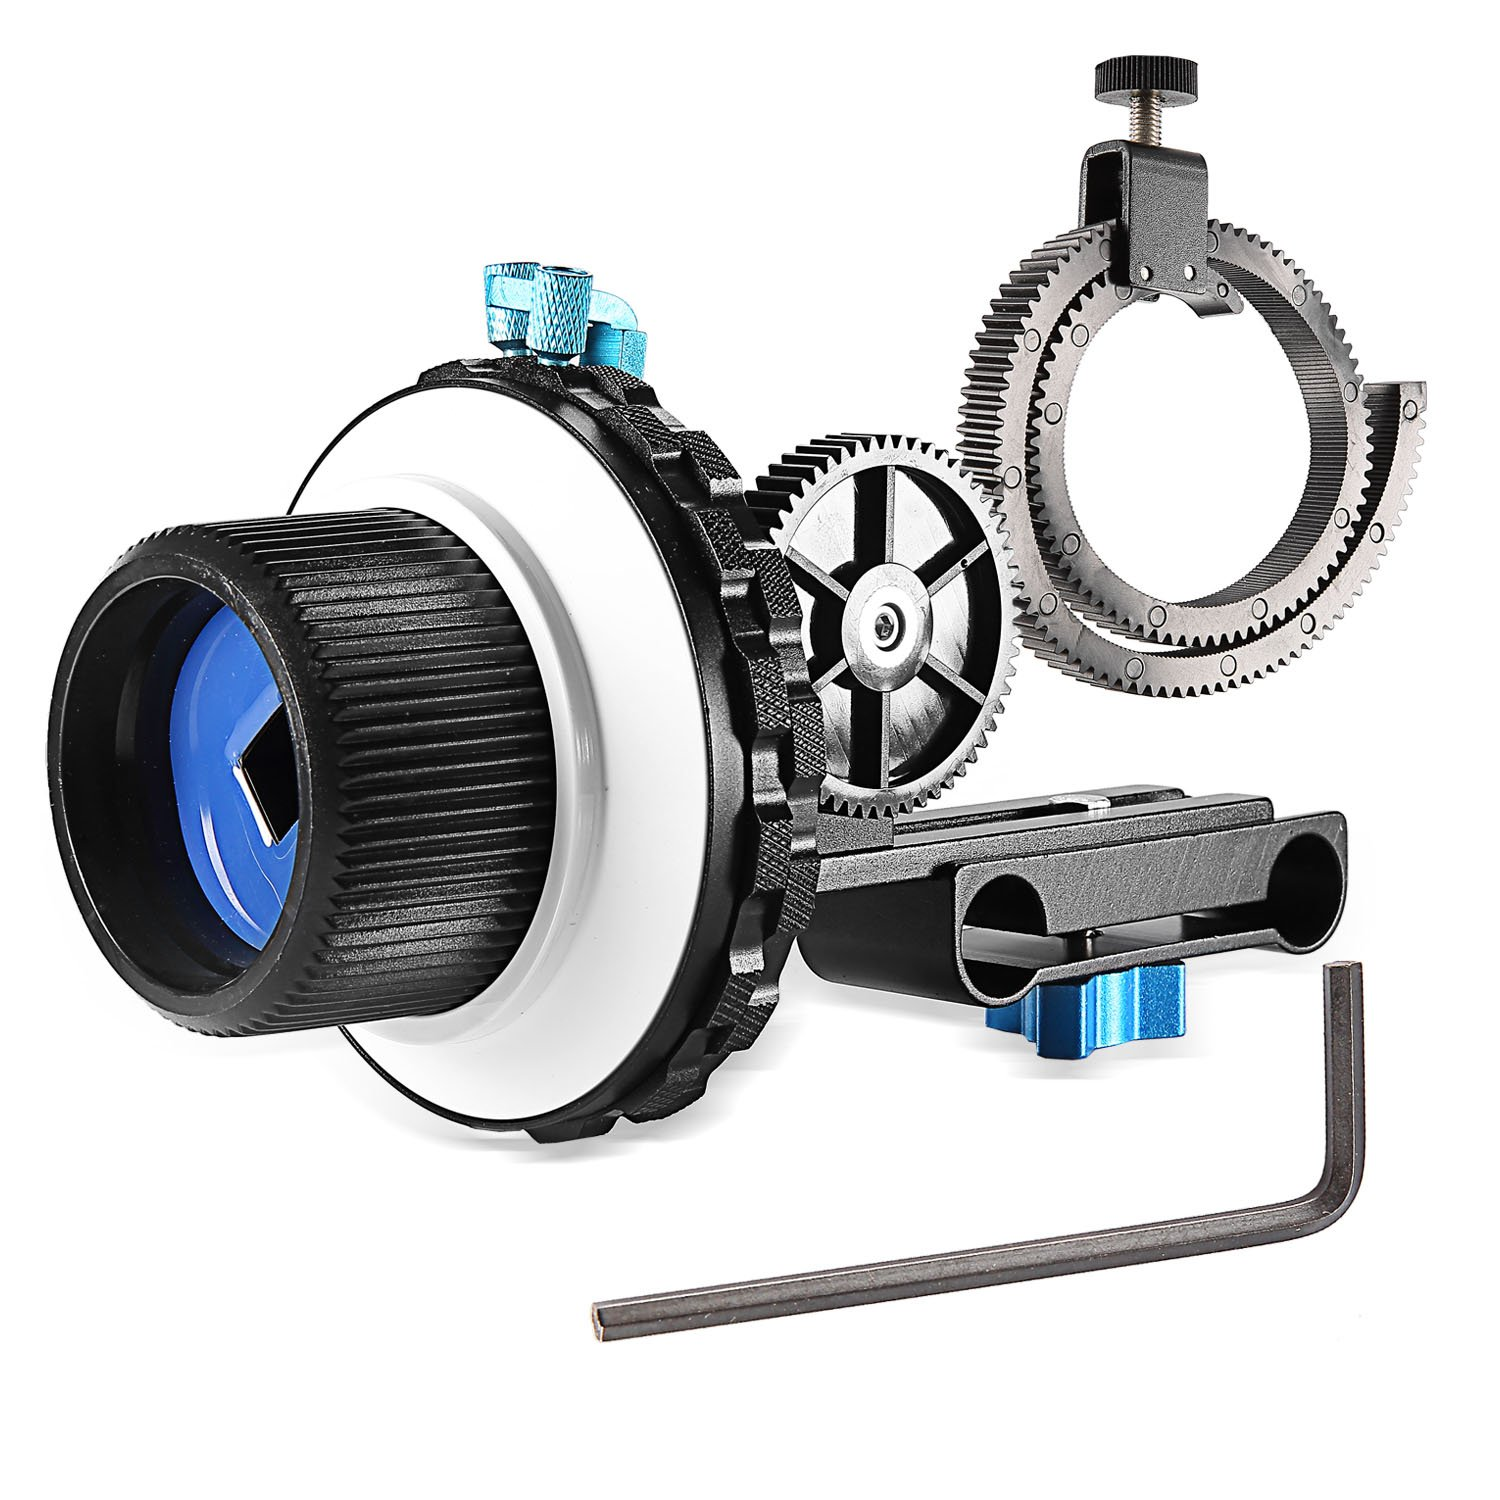 Neewer A-B Stop Follow Focus C2 with Gear Ring Belt for DSLR Cameras Such as Nikon,Canon,Sony DV/Camcorder/Film/Video Cameras,Fits 15mm Rod Mounts,Shoulder Supports by Neewer